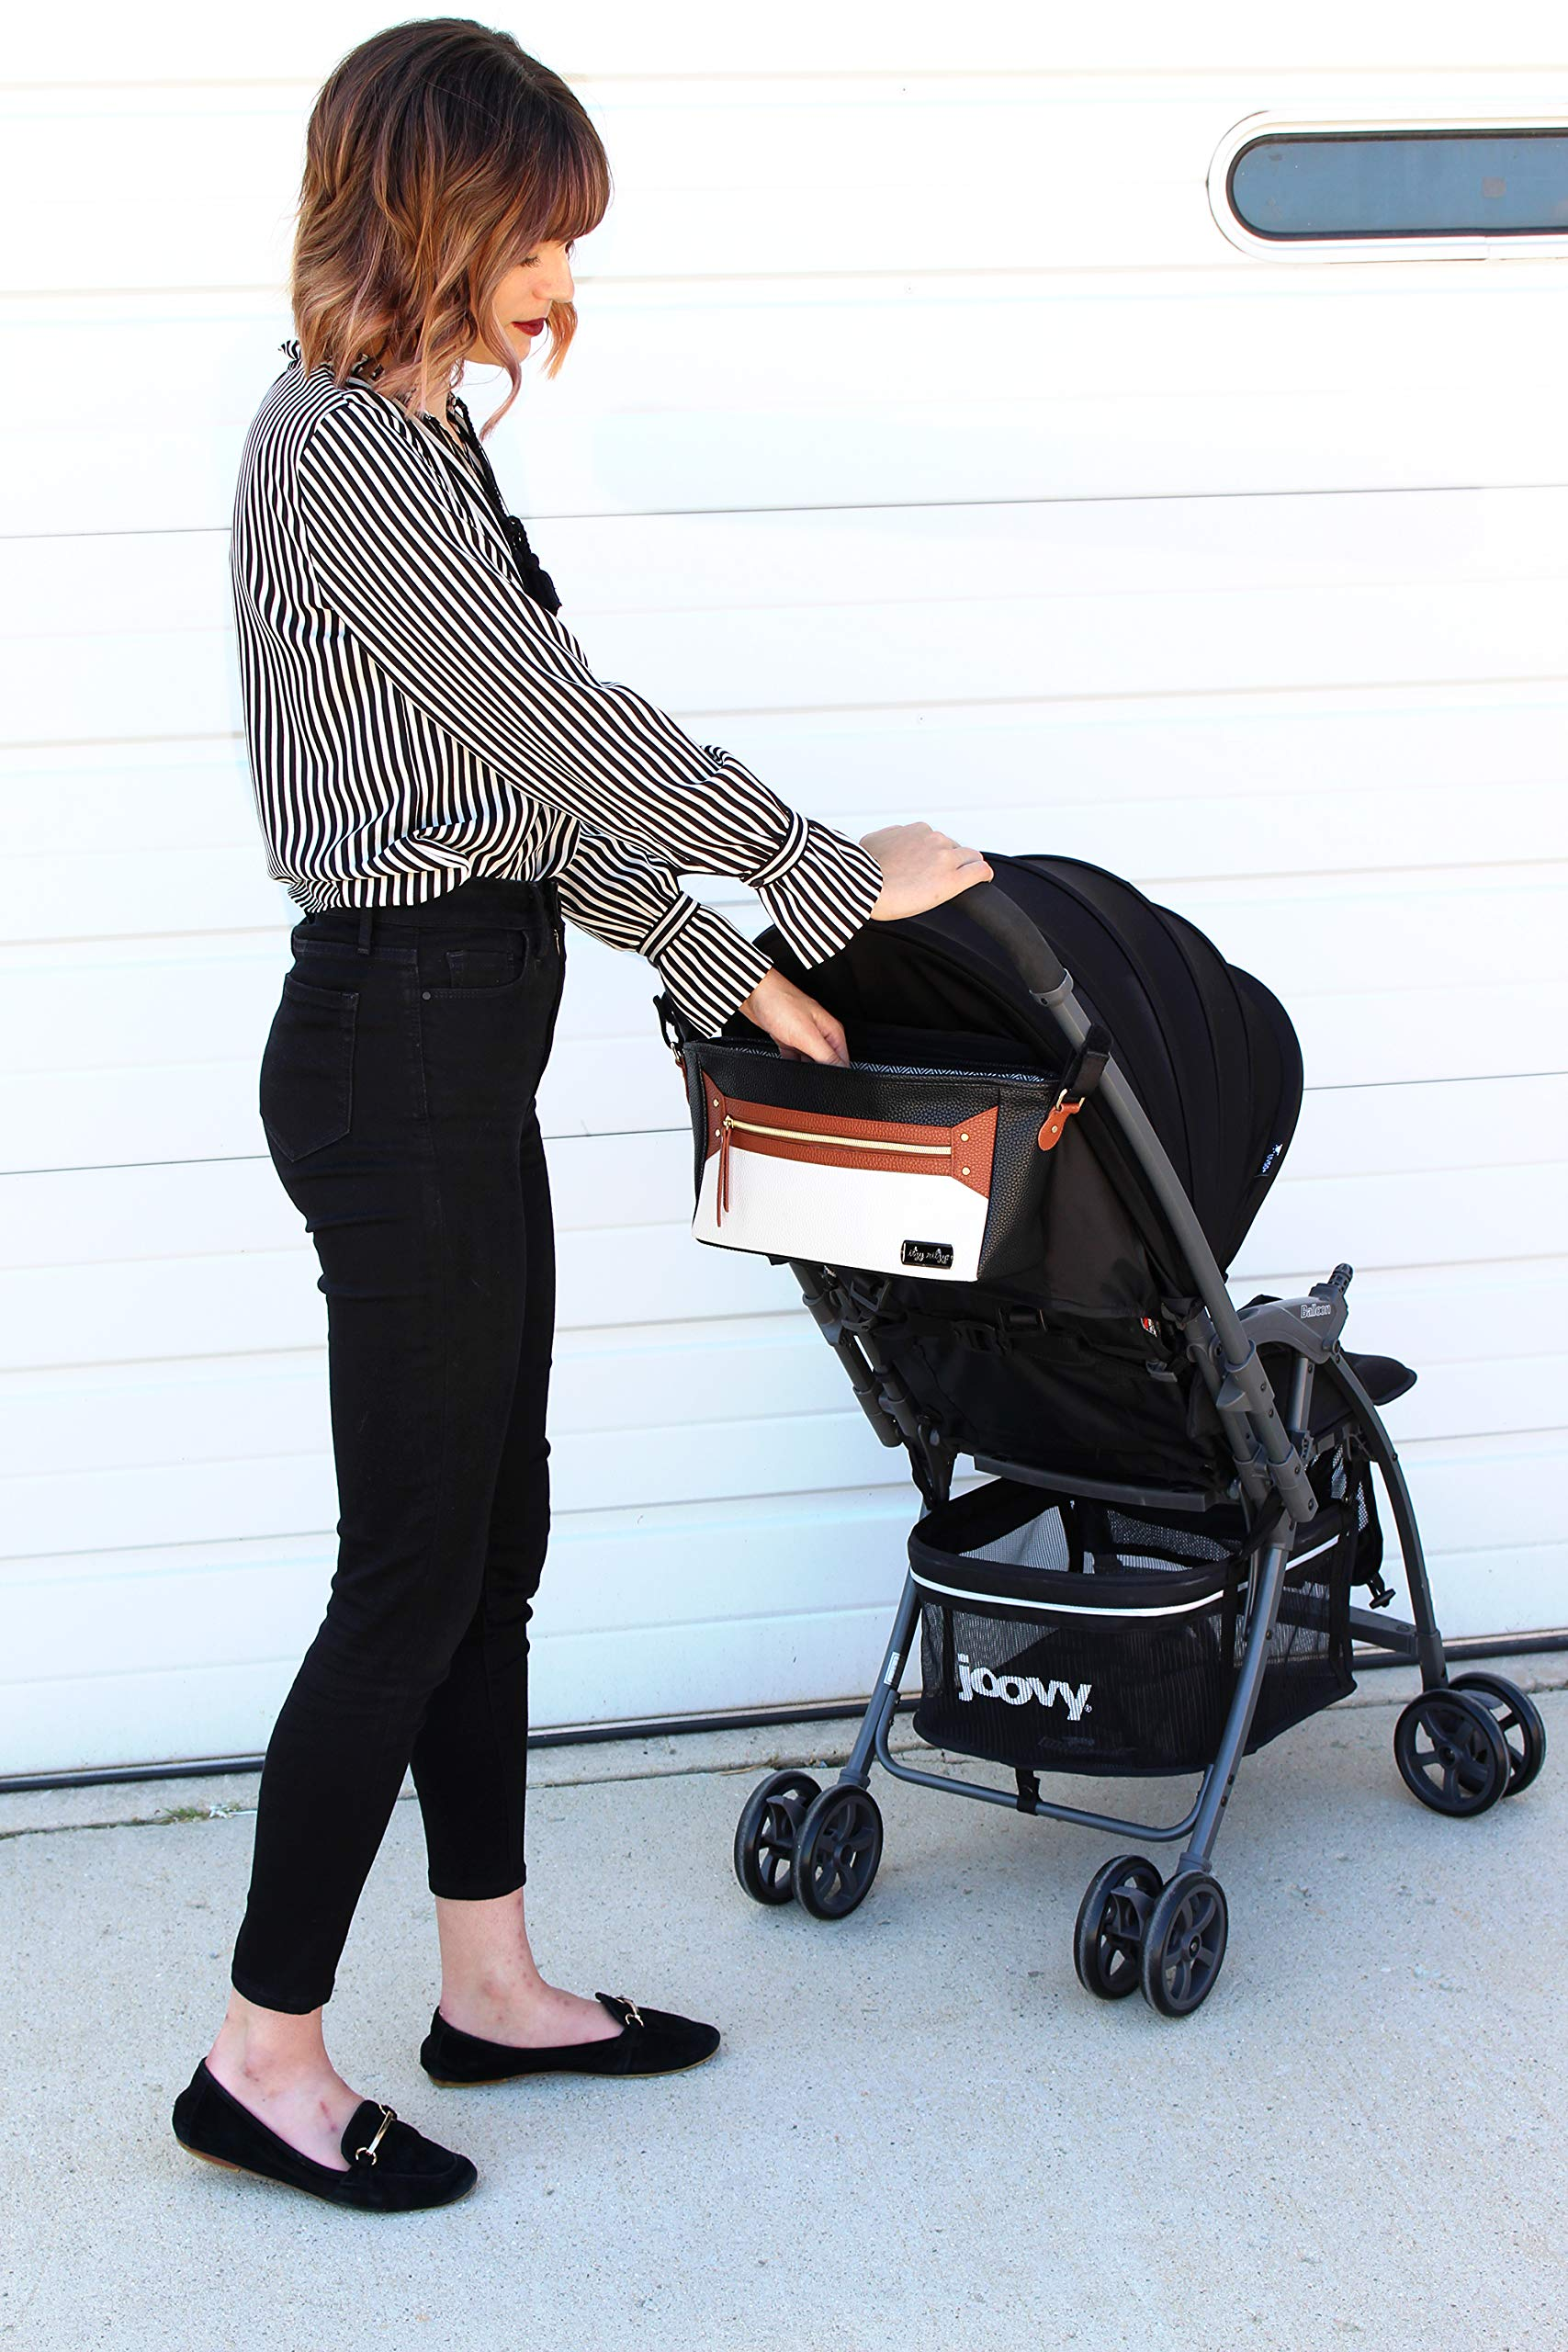 Itzy Ritzy Adjustable Stroller Caddy - Stroller Organizer Featuring Two Built-in Pockets, Front Zippered Pocket and Adjustable Straps to Fit Nearly Any Stroller, Coffee and Cream by Itzy Ritzy (Image #4)